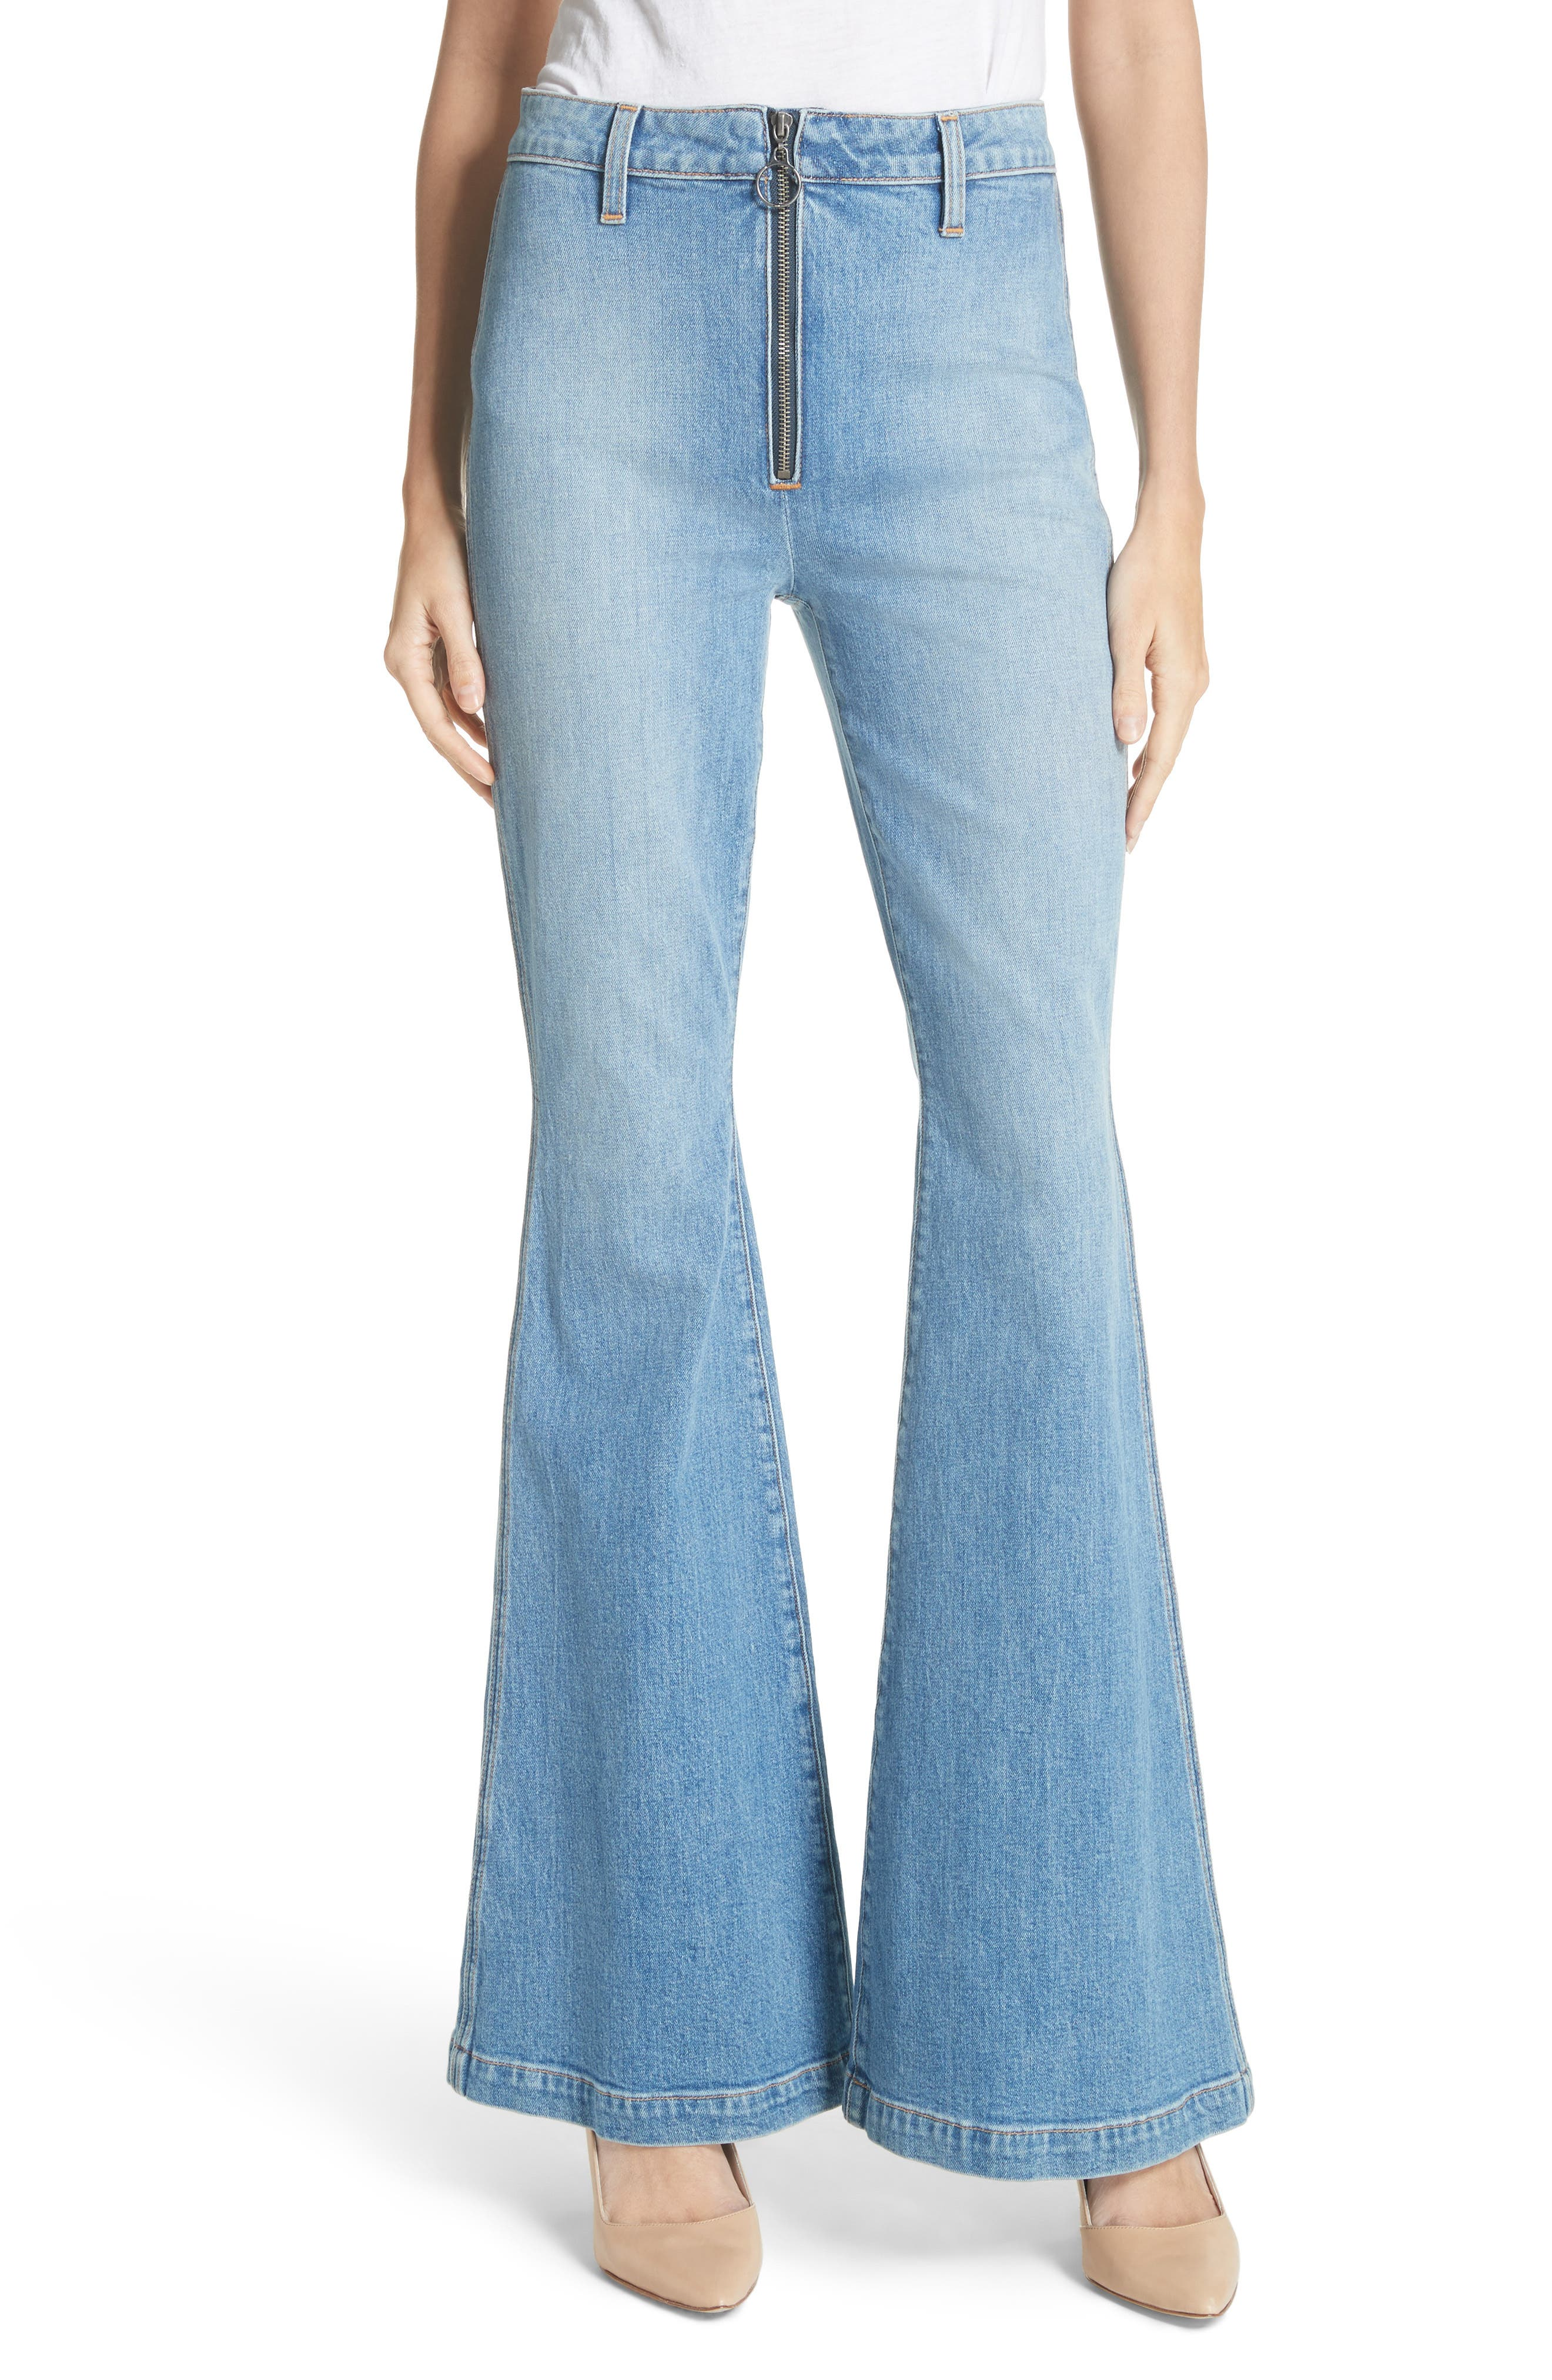 AO.LA Beautiful Exposed Zip Bell Bottom Jeans,                         Main,                         color, Sweet Emotion